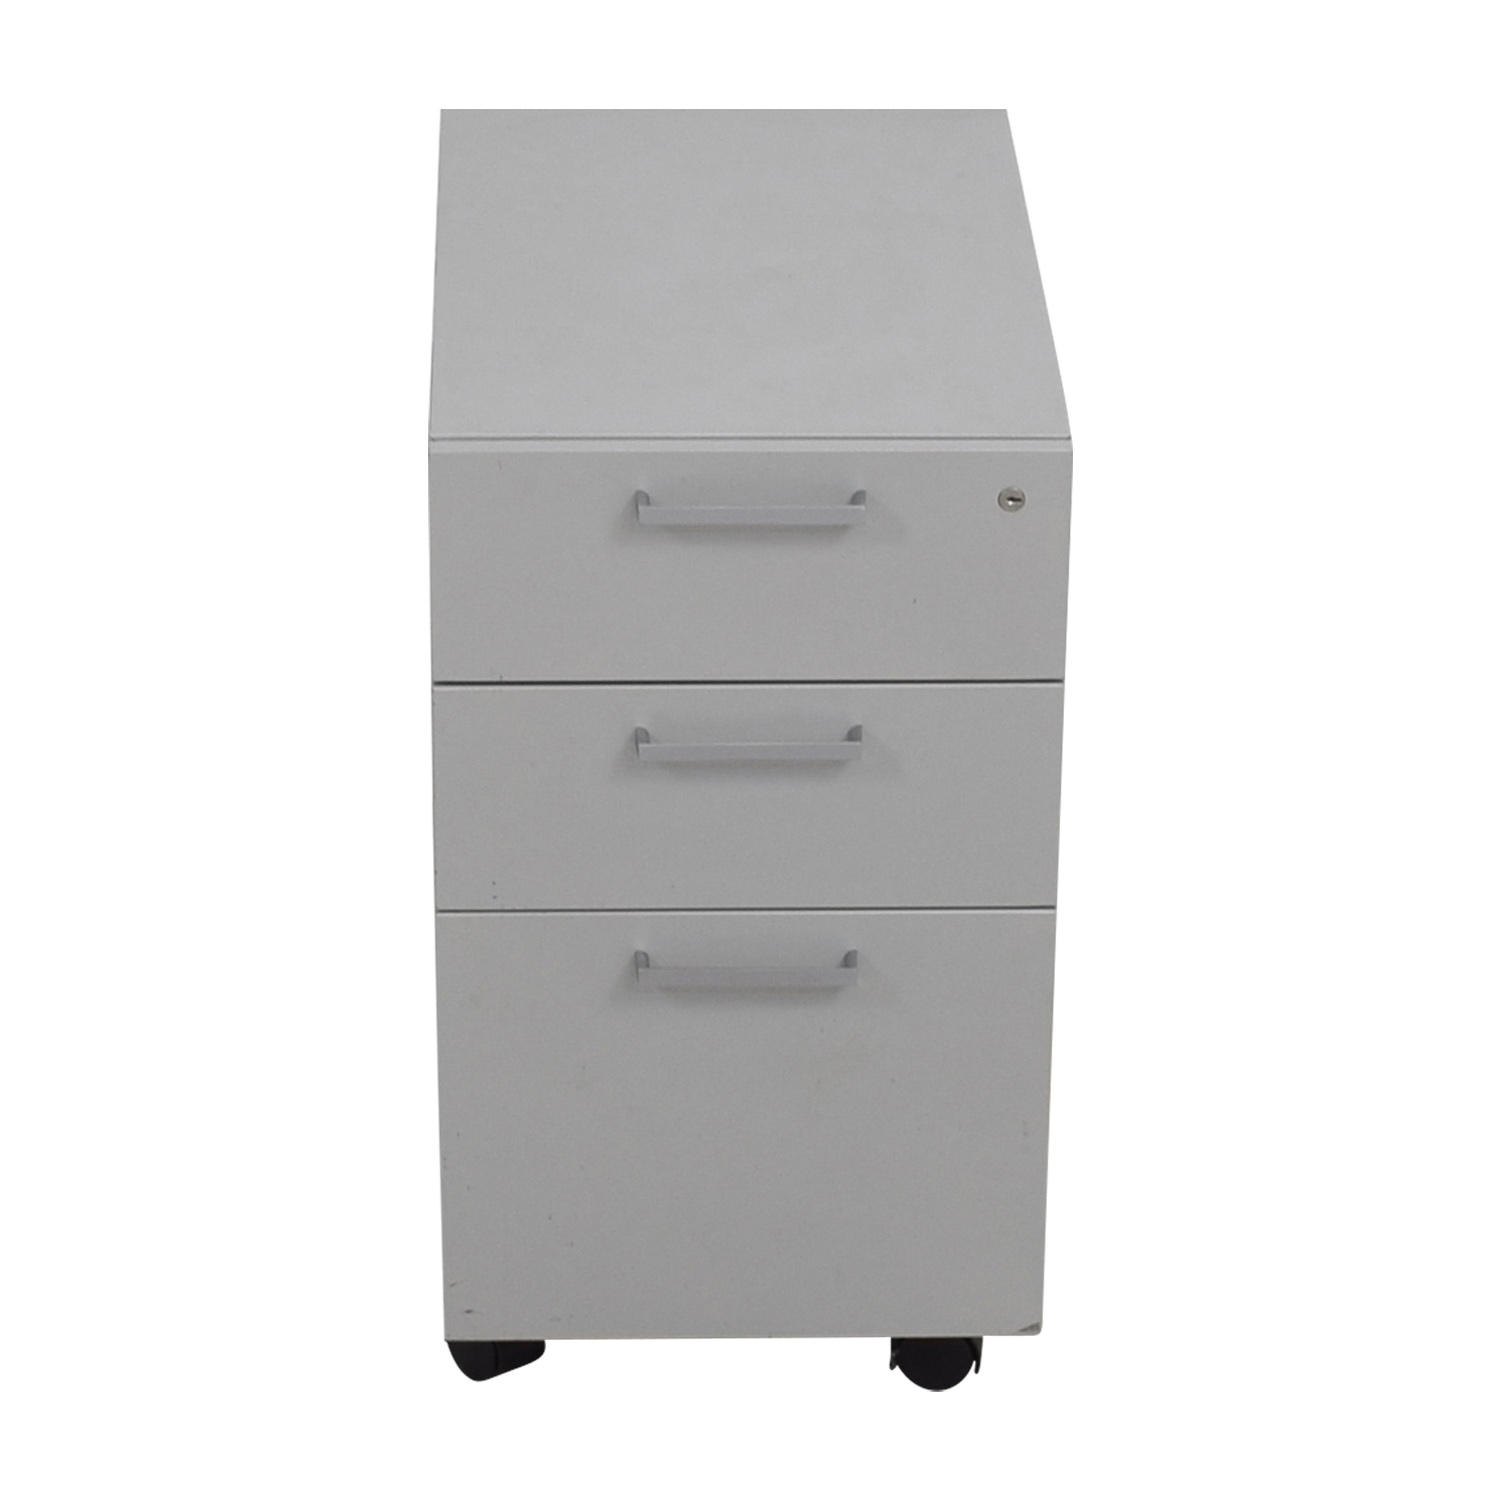 Allsteel Allsteel Mobile Cabinet used